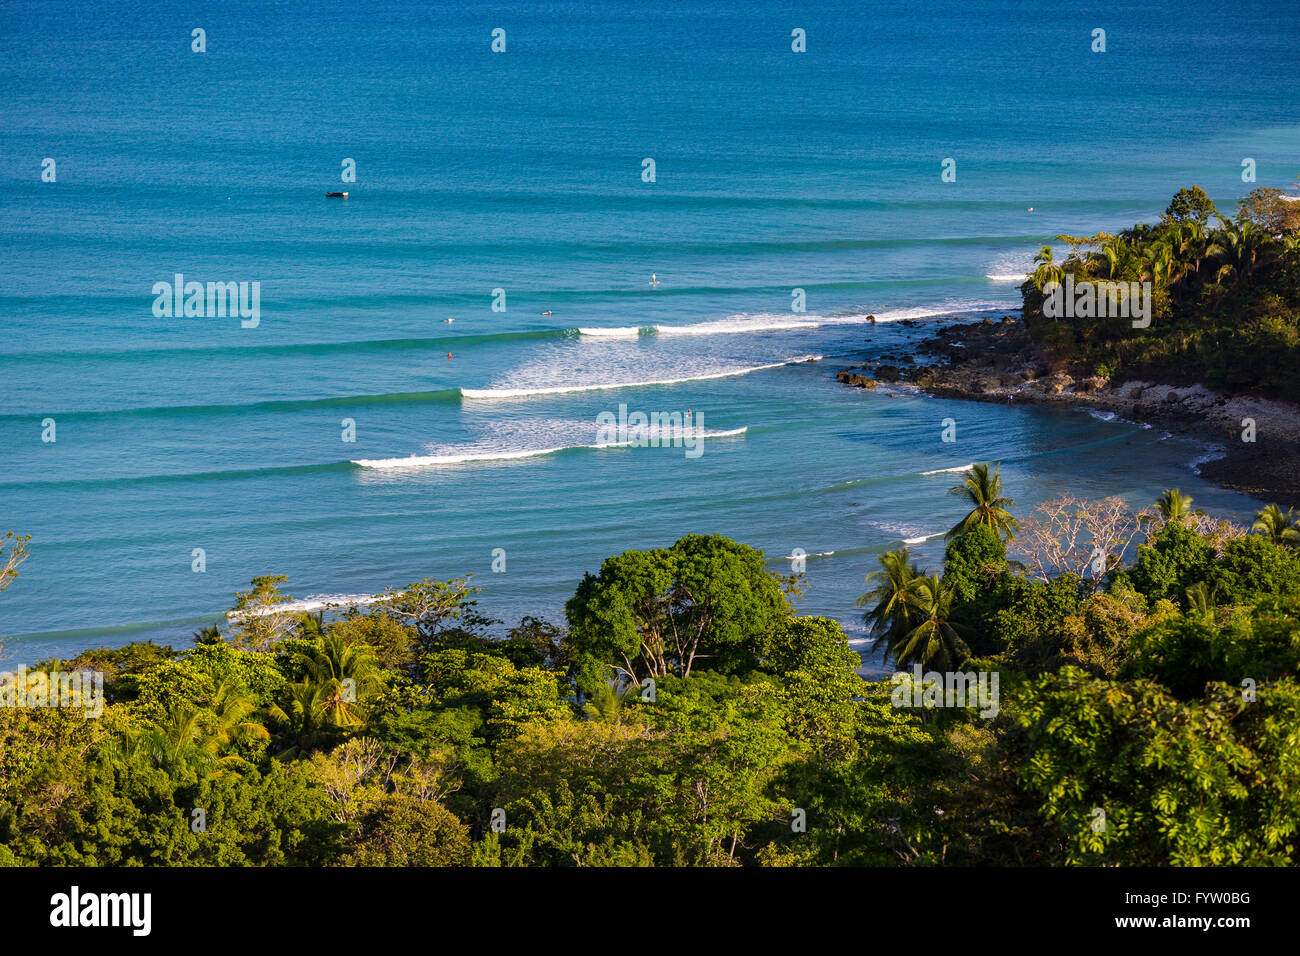 OSA PENINSULA, COSTA RICA - Pacific Ocean waves breaking at Pan Dulce beach, and rain forest. Stock Photo